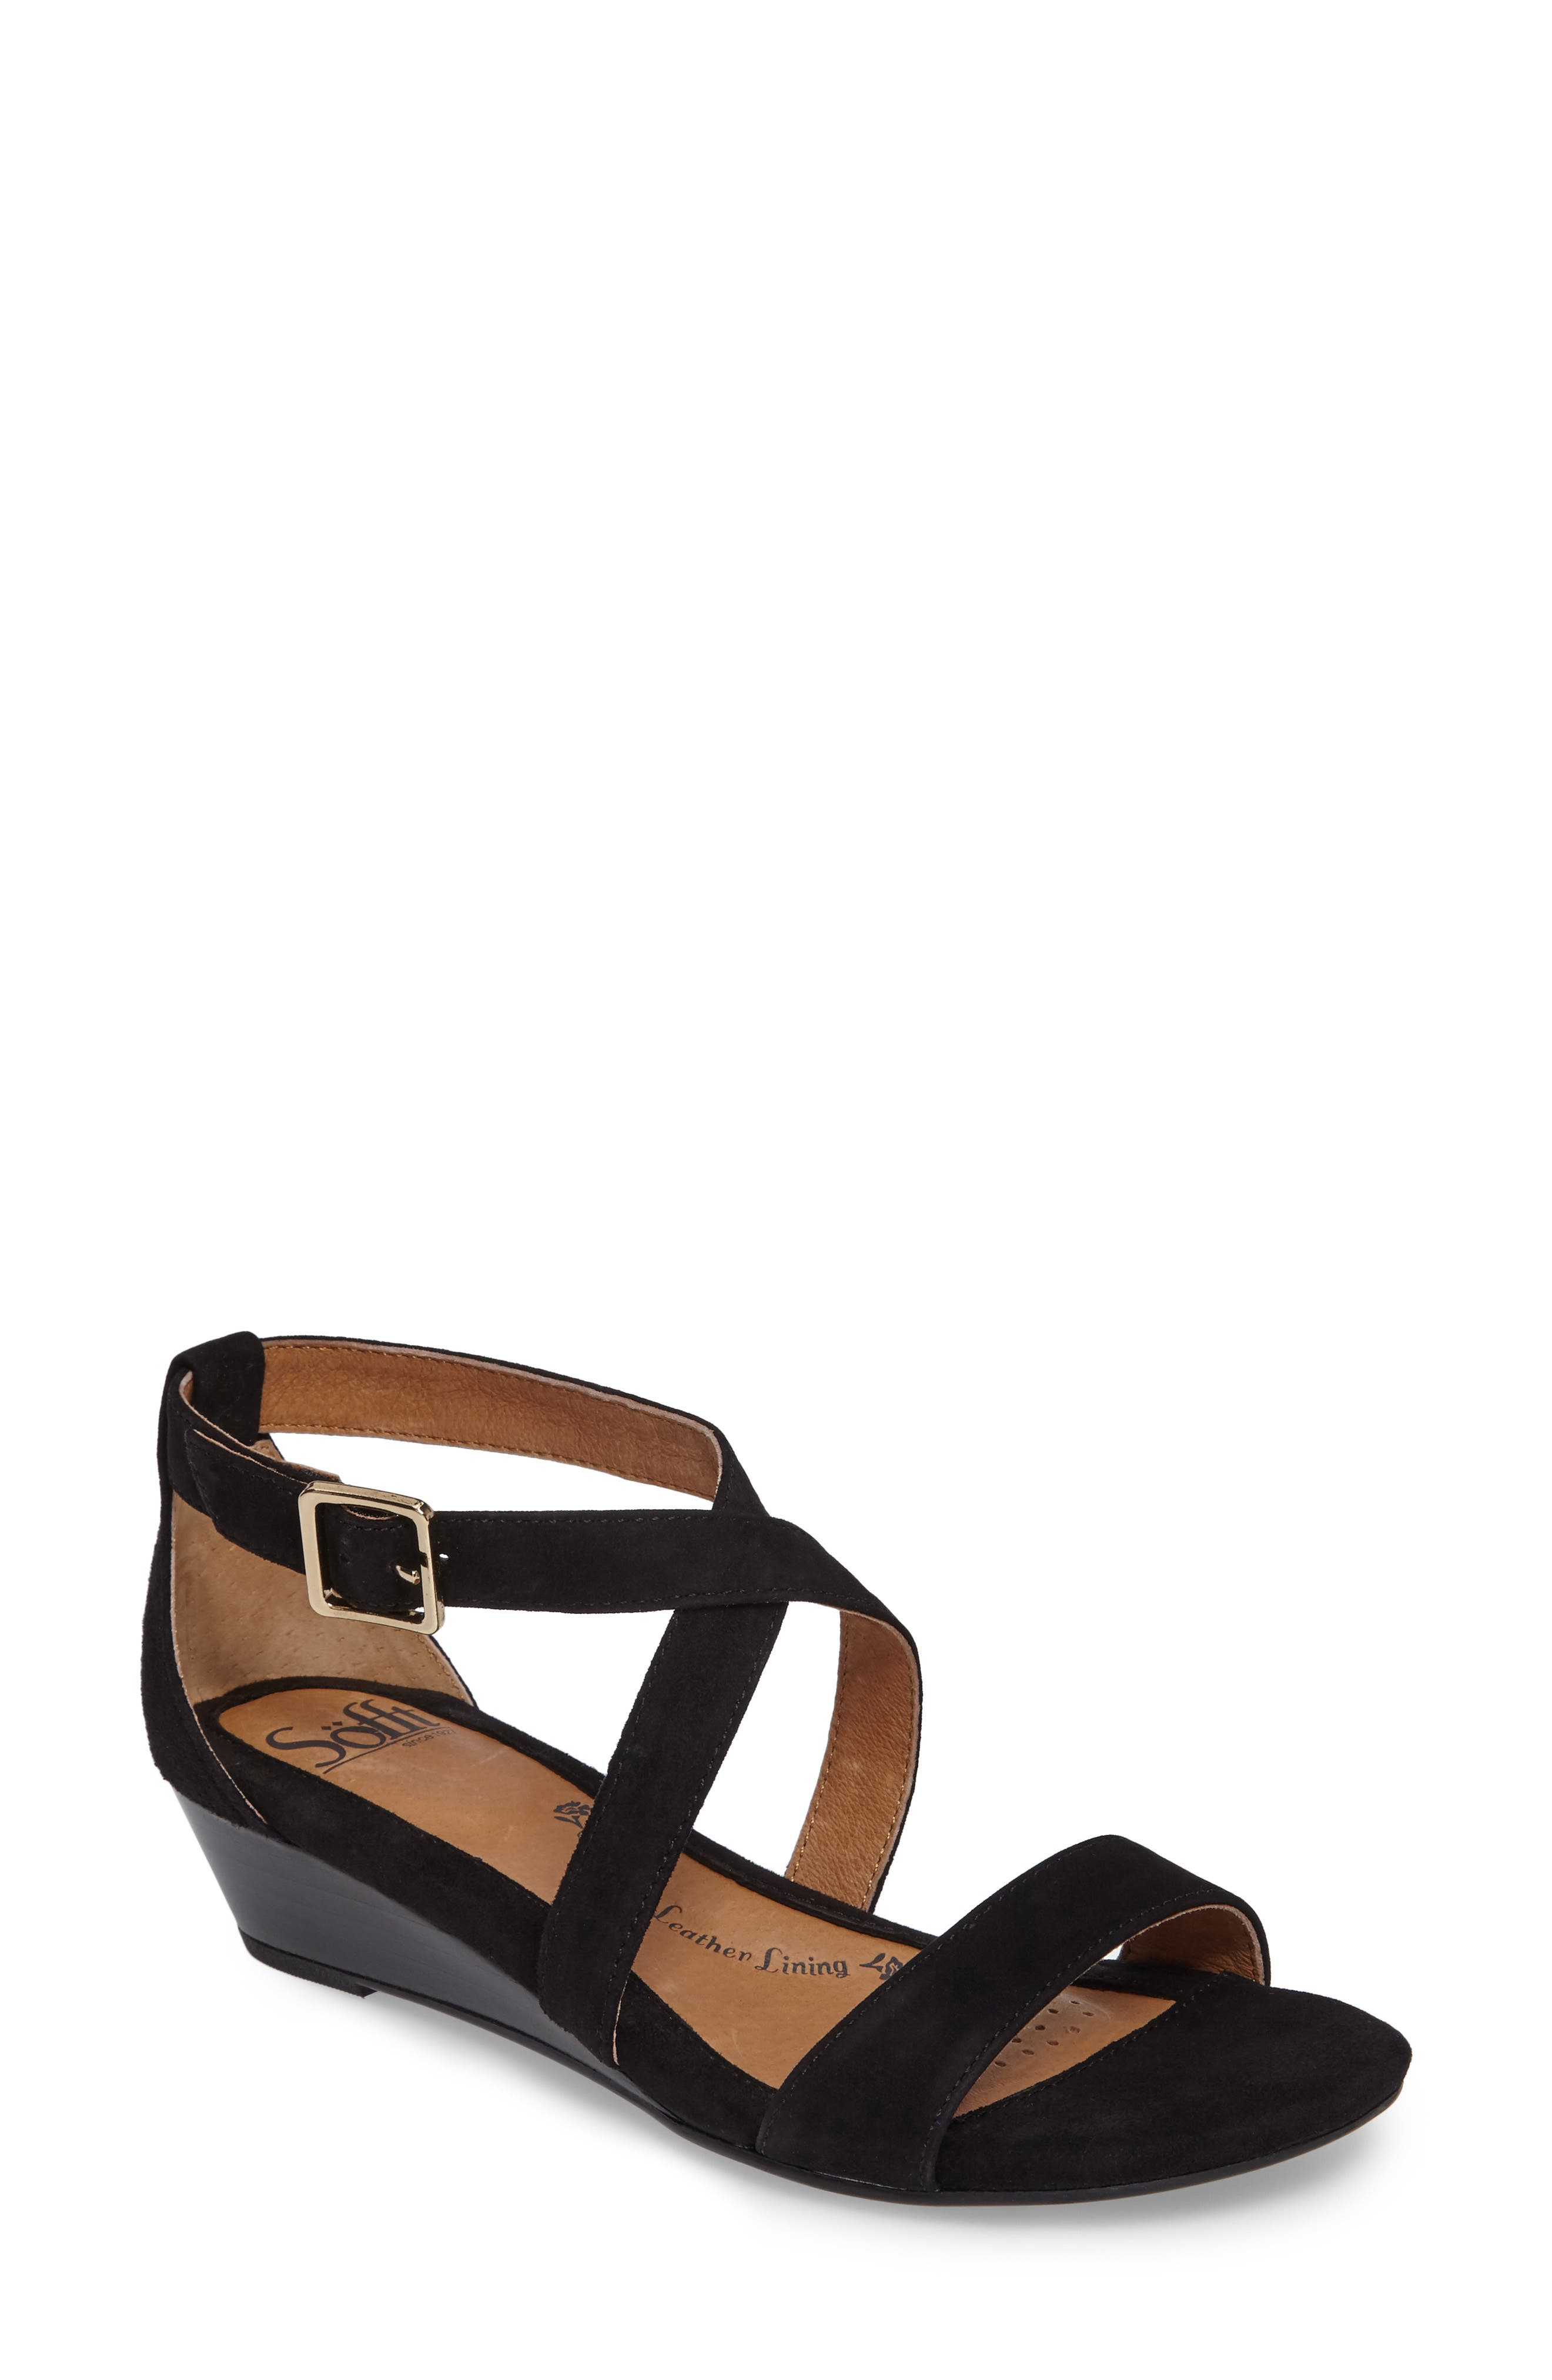 'Innis' Low Wedge Sandal,                         Main,                         color,